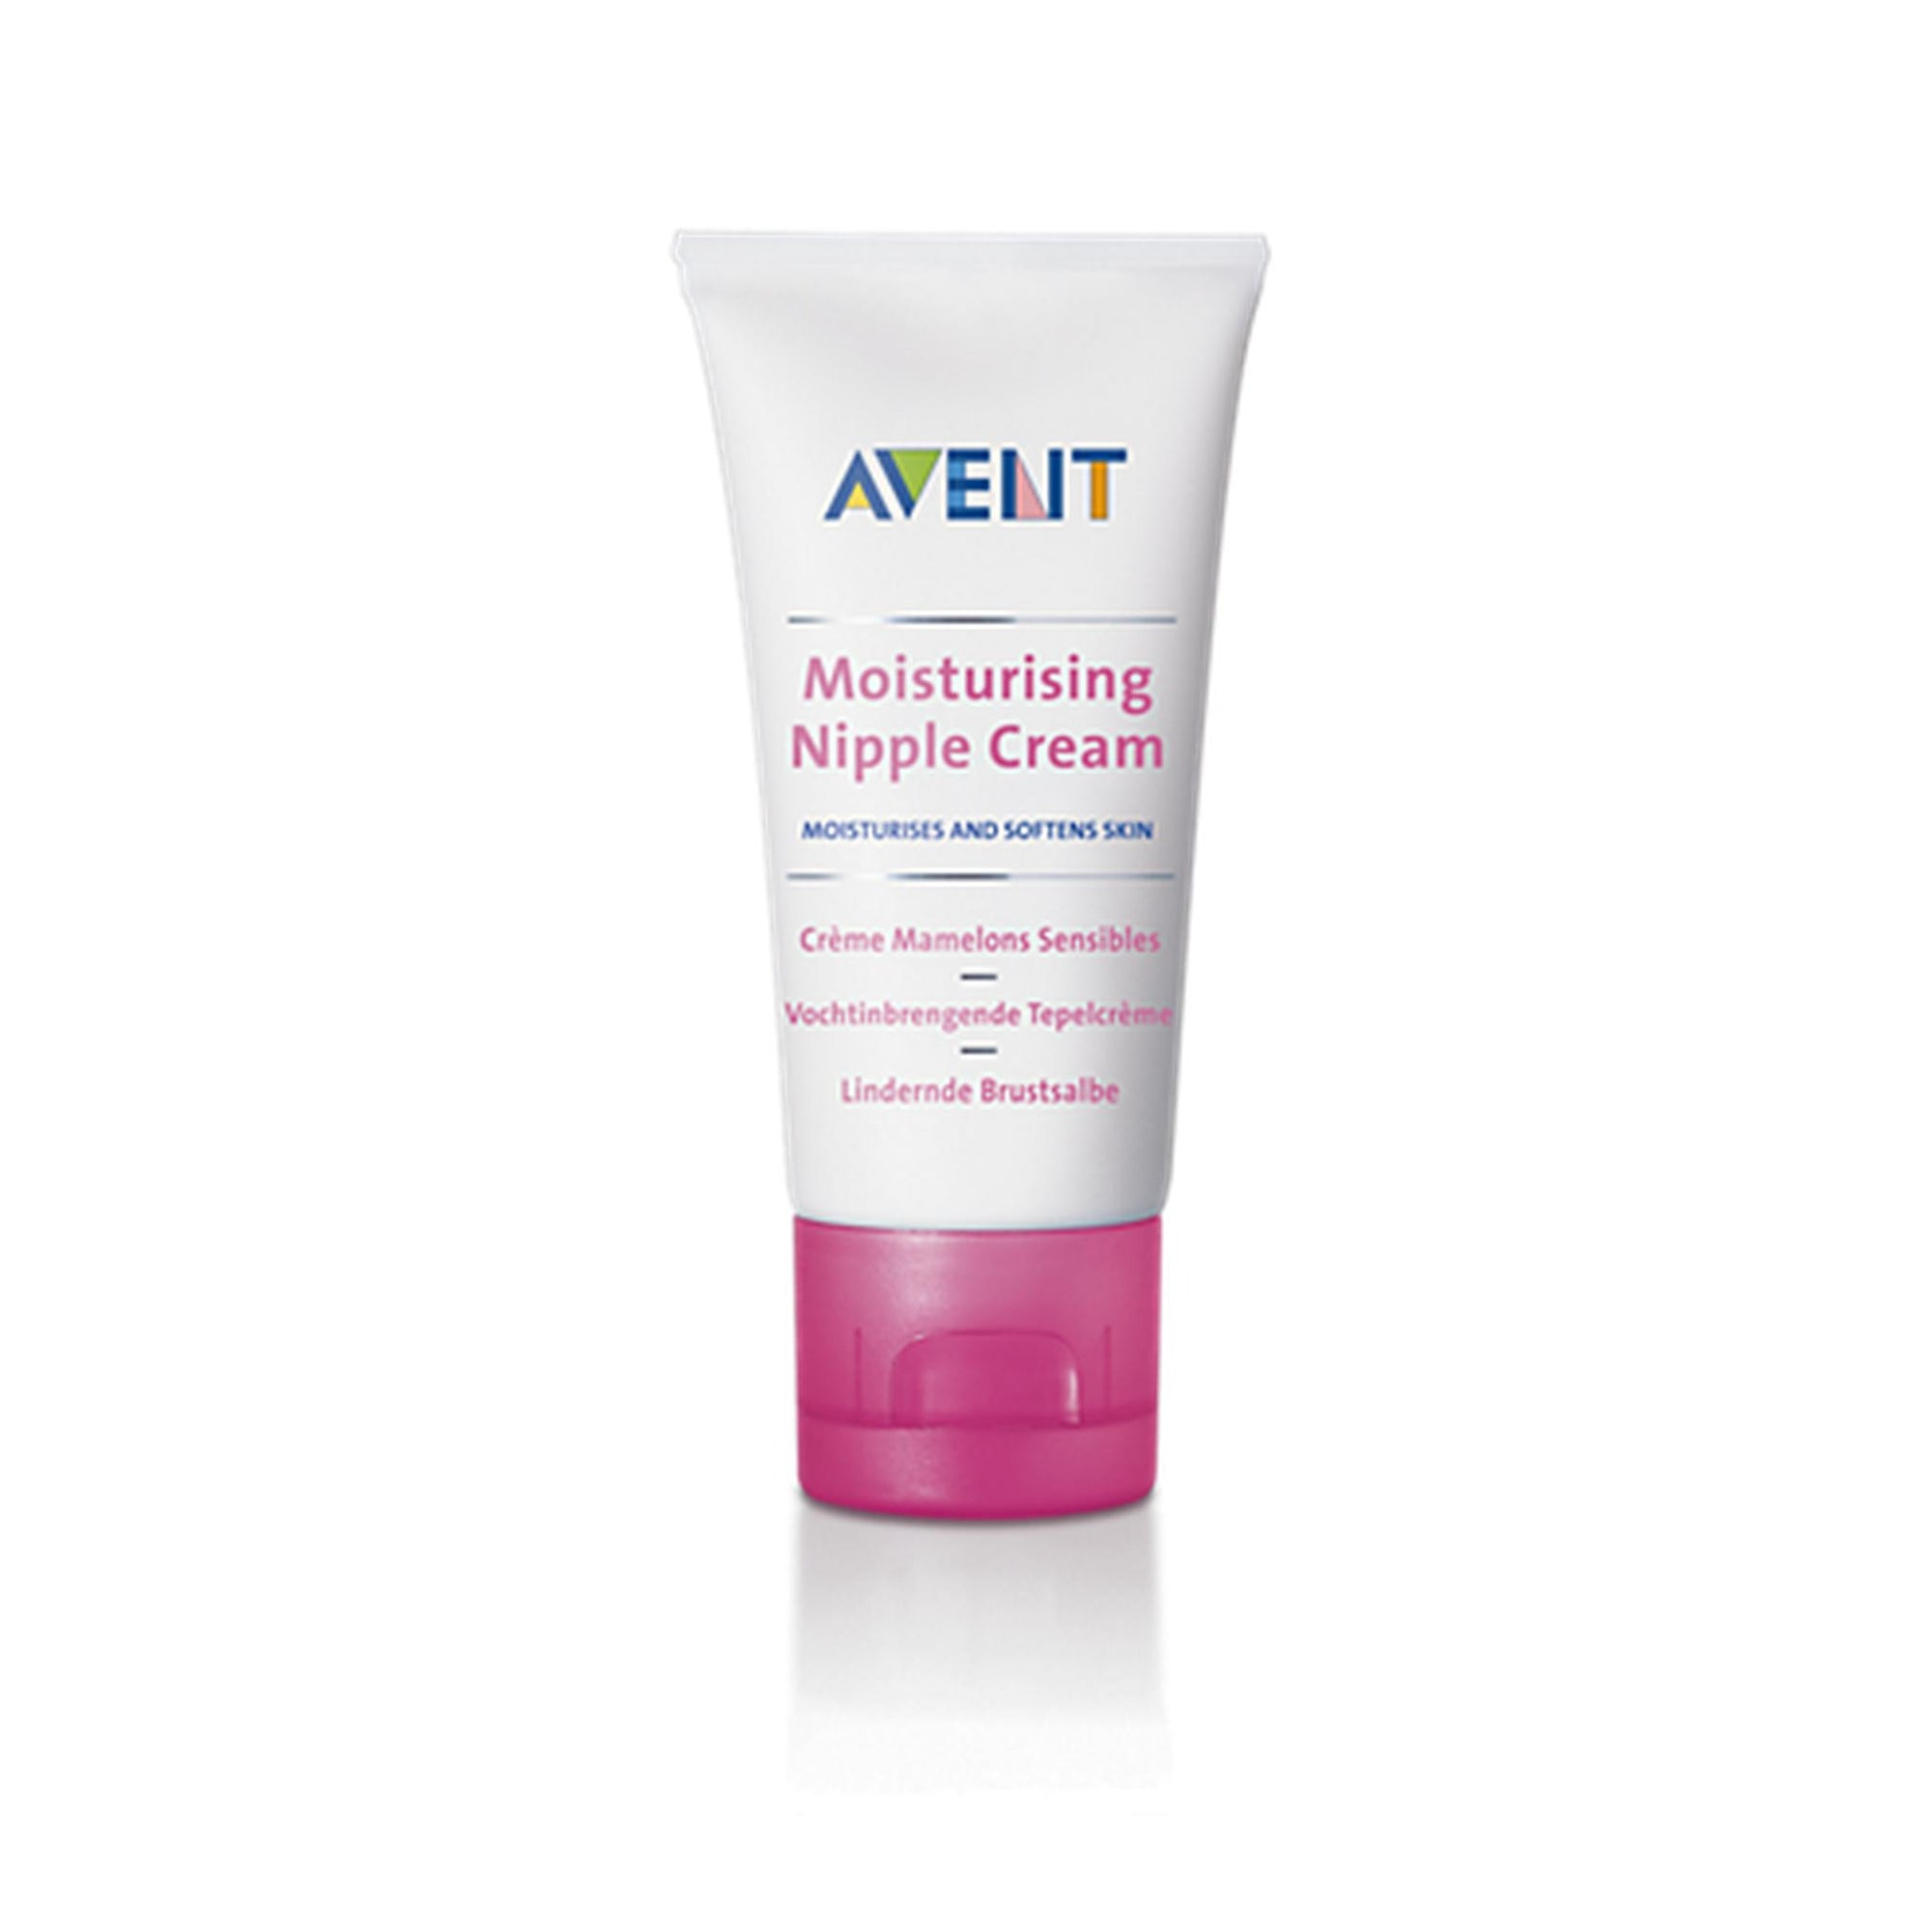 Avent Nipple Moisturizing Cream 30ml-Nipple Cream-Mother and Baby Shop Kenya's #1 Online Baby Shop